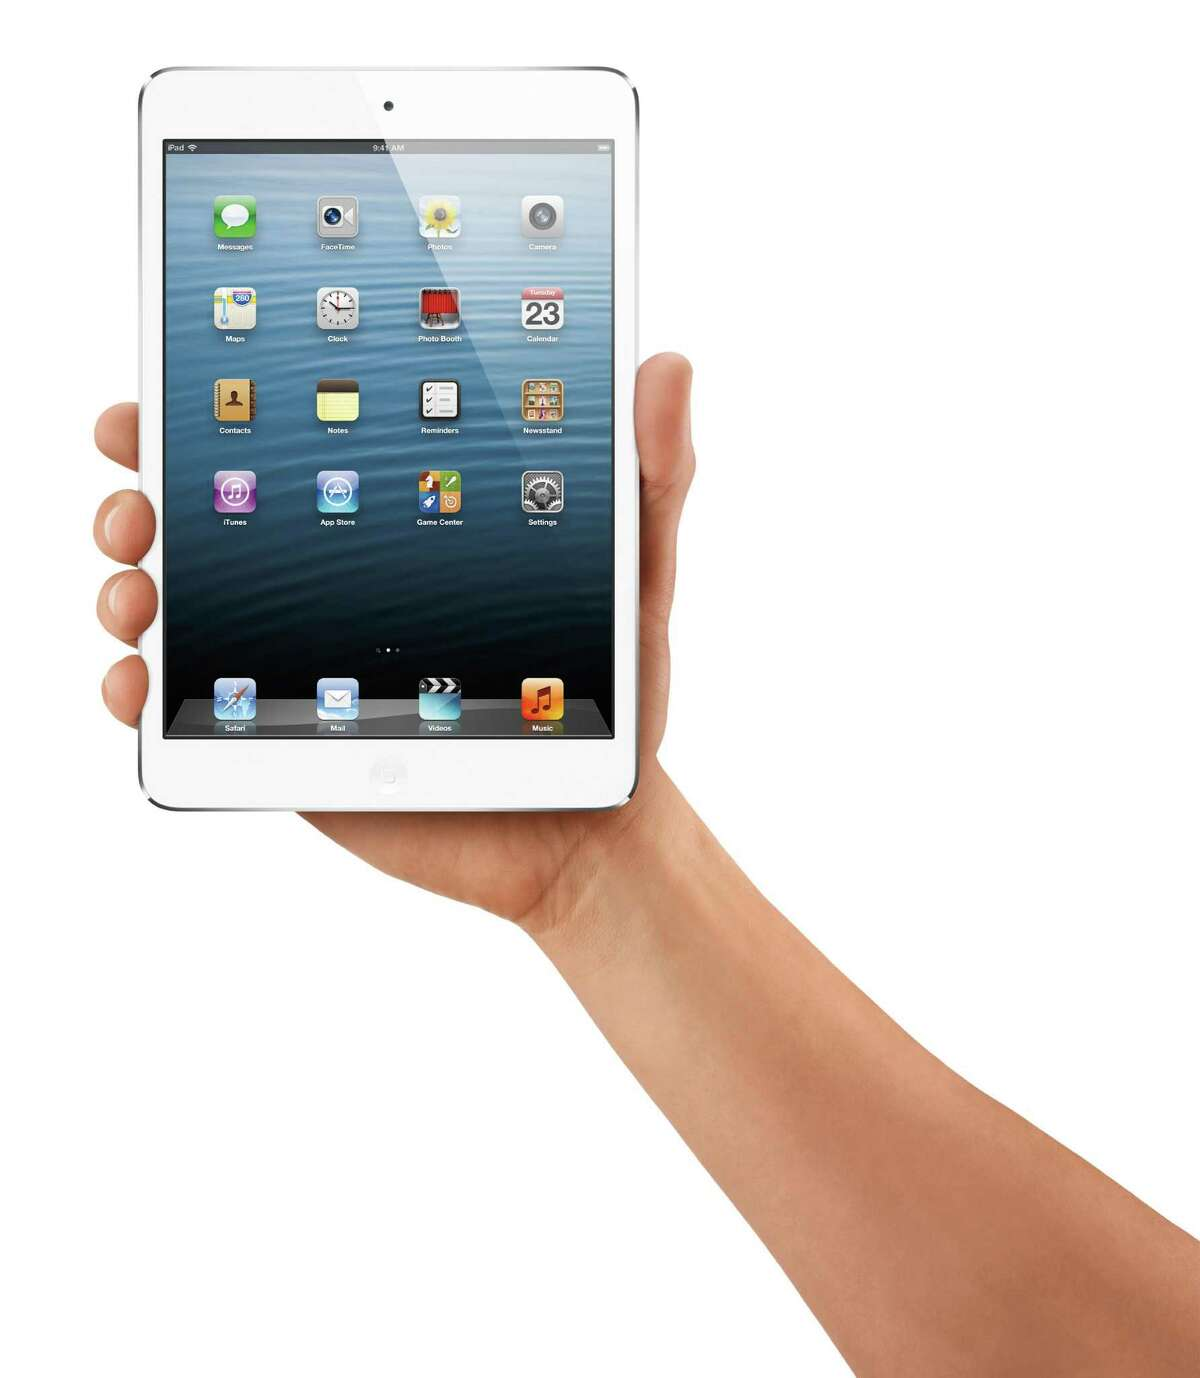 The Apple Inc. iPad mini is seen in this undated handout photo released to the media on Tuesday, Oct. 23, 2012. The device boasts a 7.9-inch screen diagonally, compared with the 9.7-inch screen of the current iPad. Source: Apple Inc. via Bloomberg